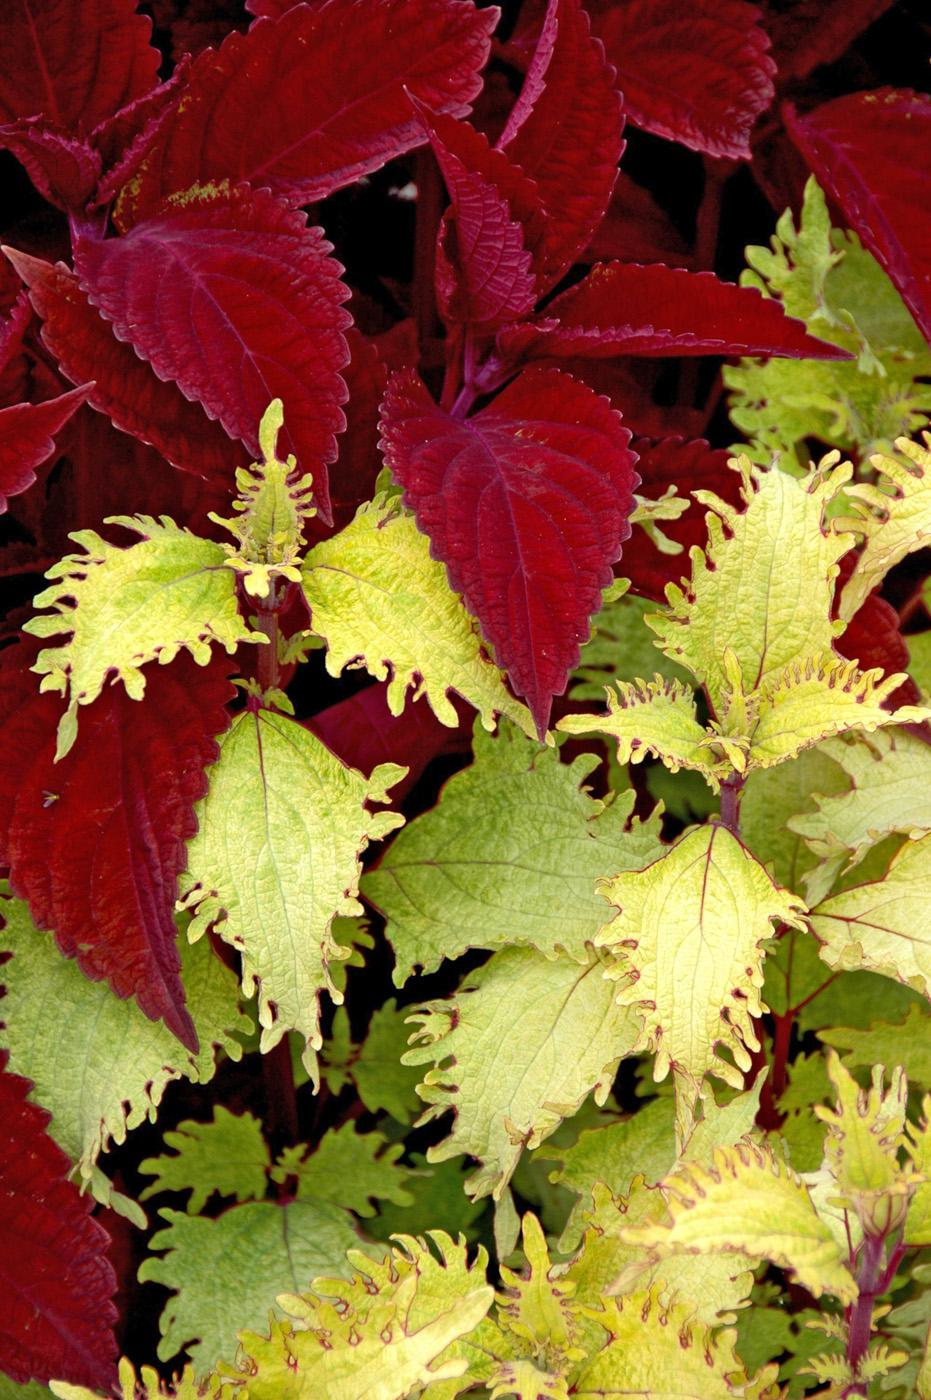 Big Red Judy, pictured here with Rose Stem Lace, is a large coleus with leaves that are a rich, vibrant red. The stems of Rose Stem Lace are this same color, making the two plants partner well in containers and landscapes.